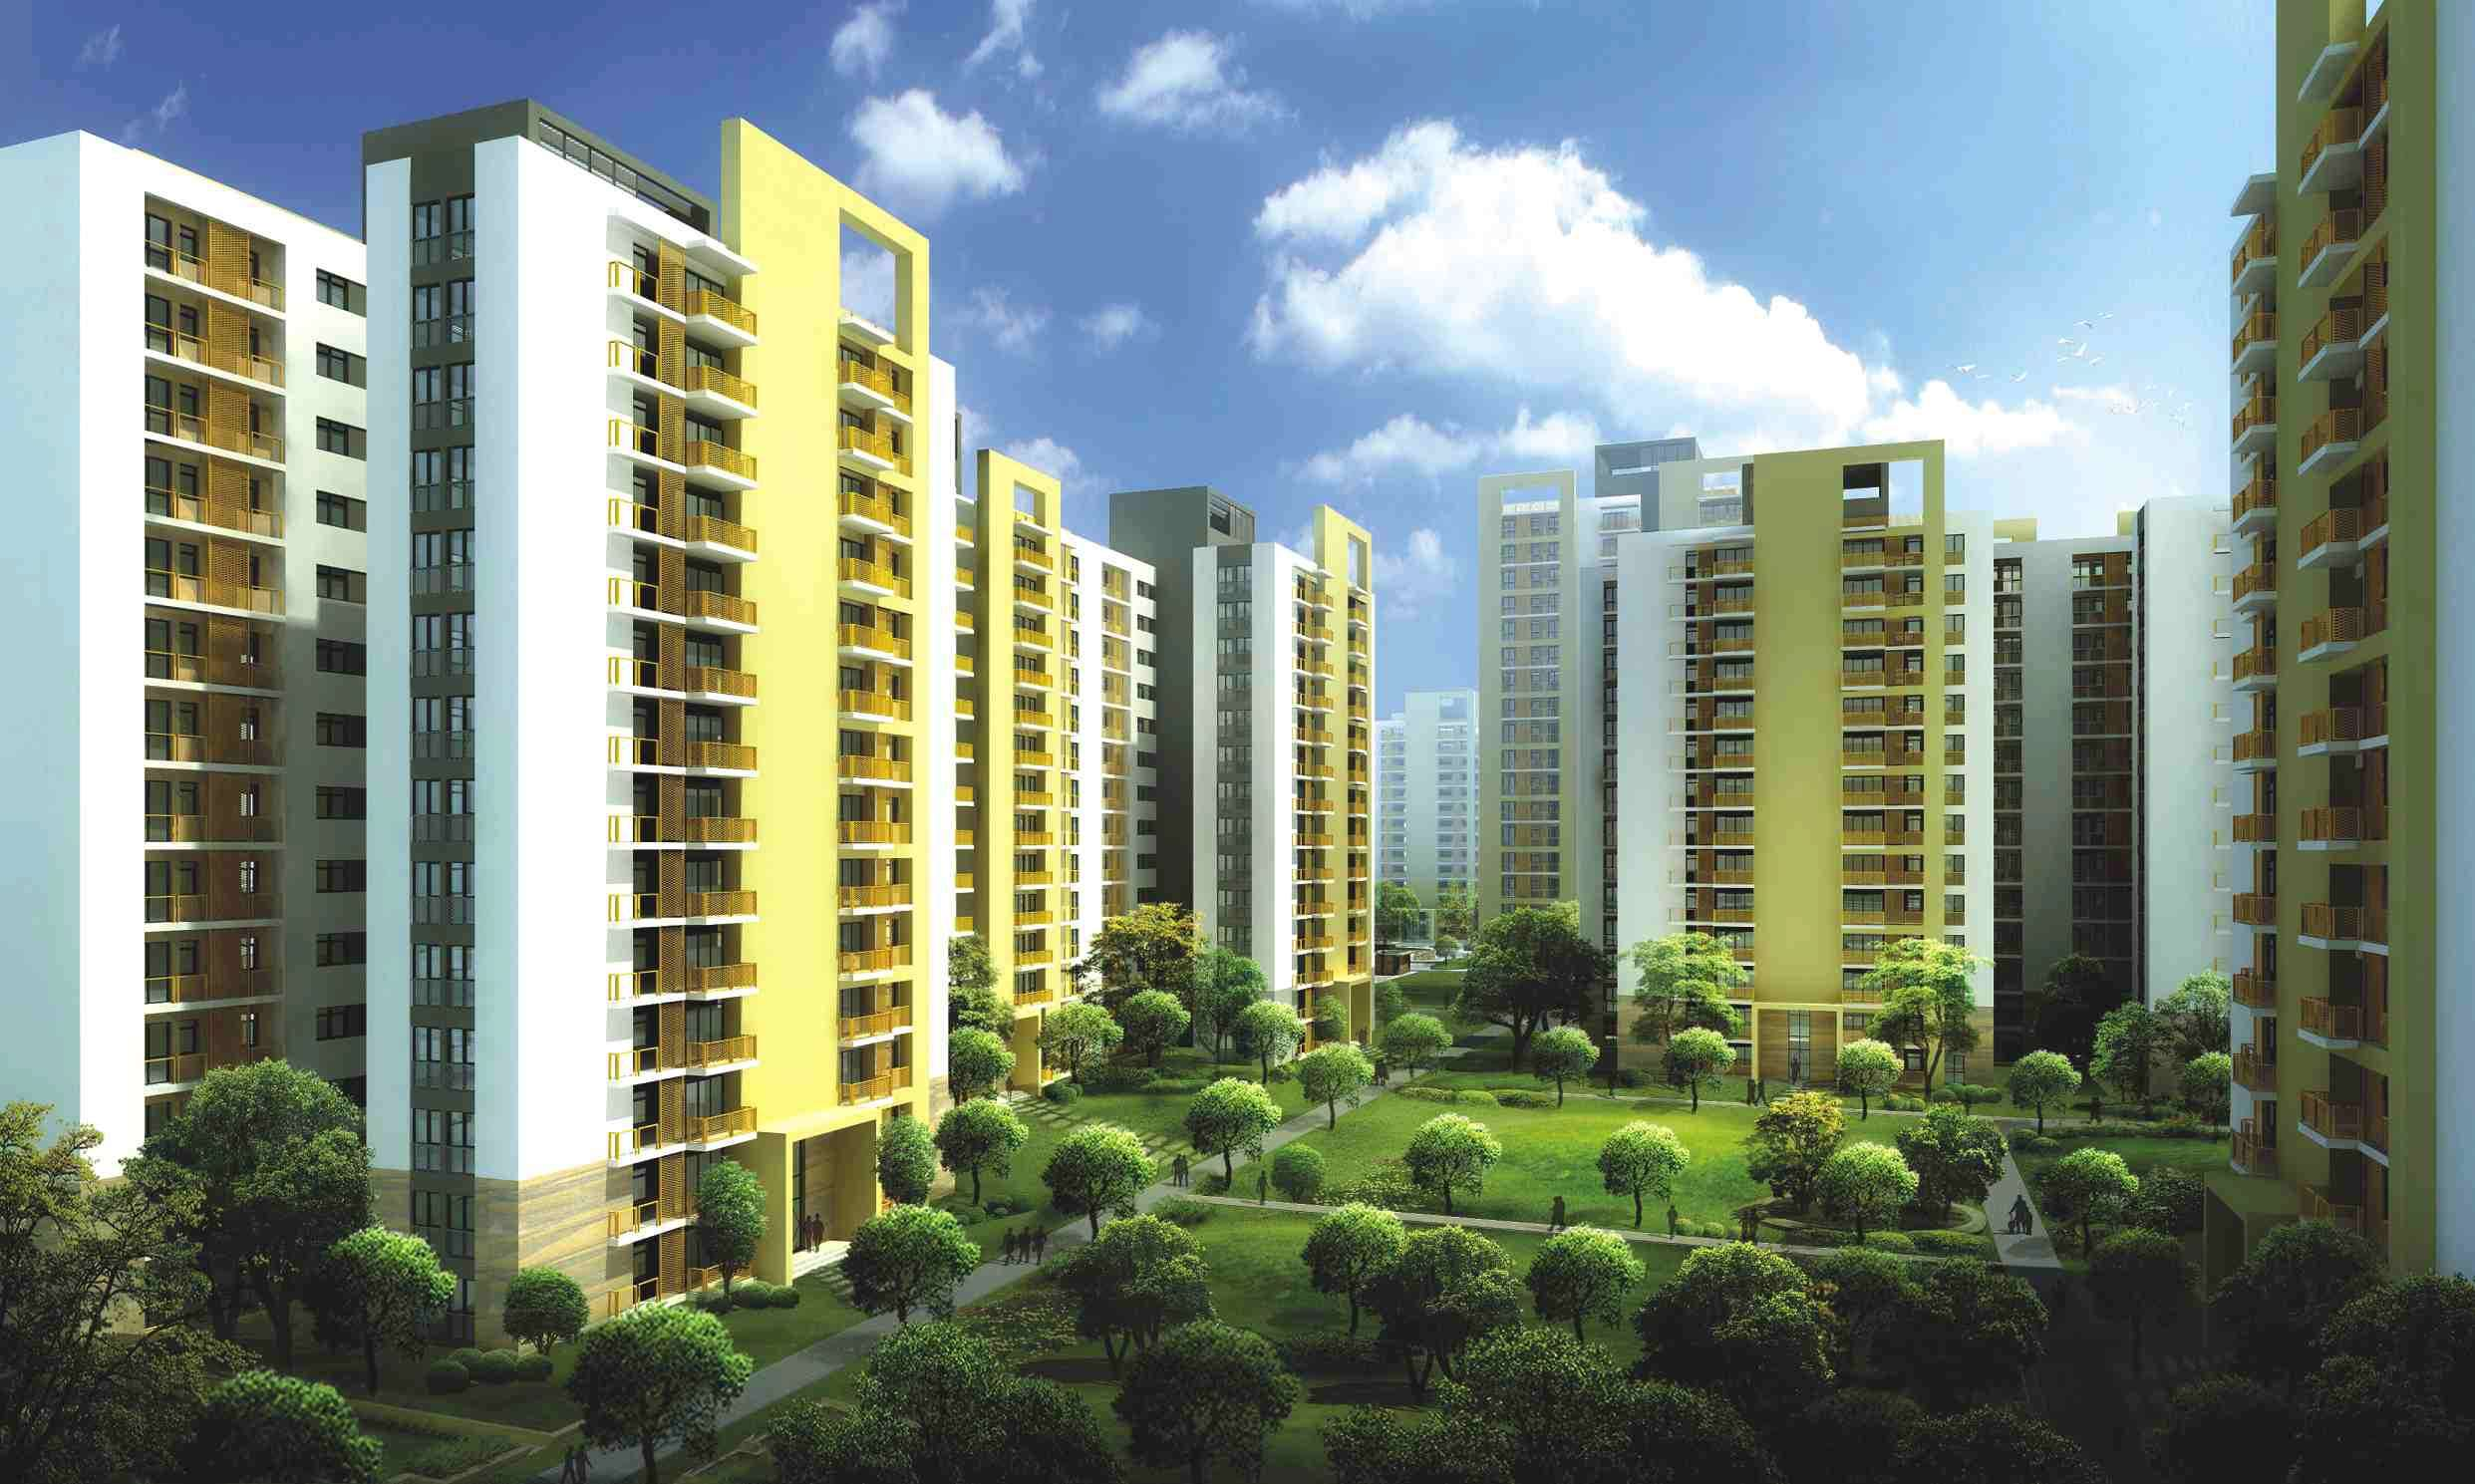 Gurgaon offering You the best Residential Properties